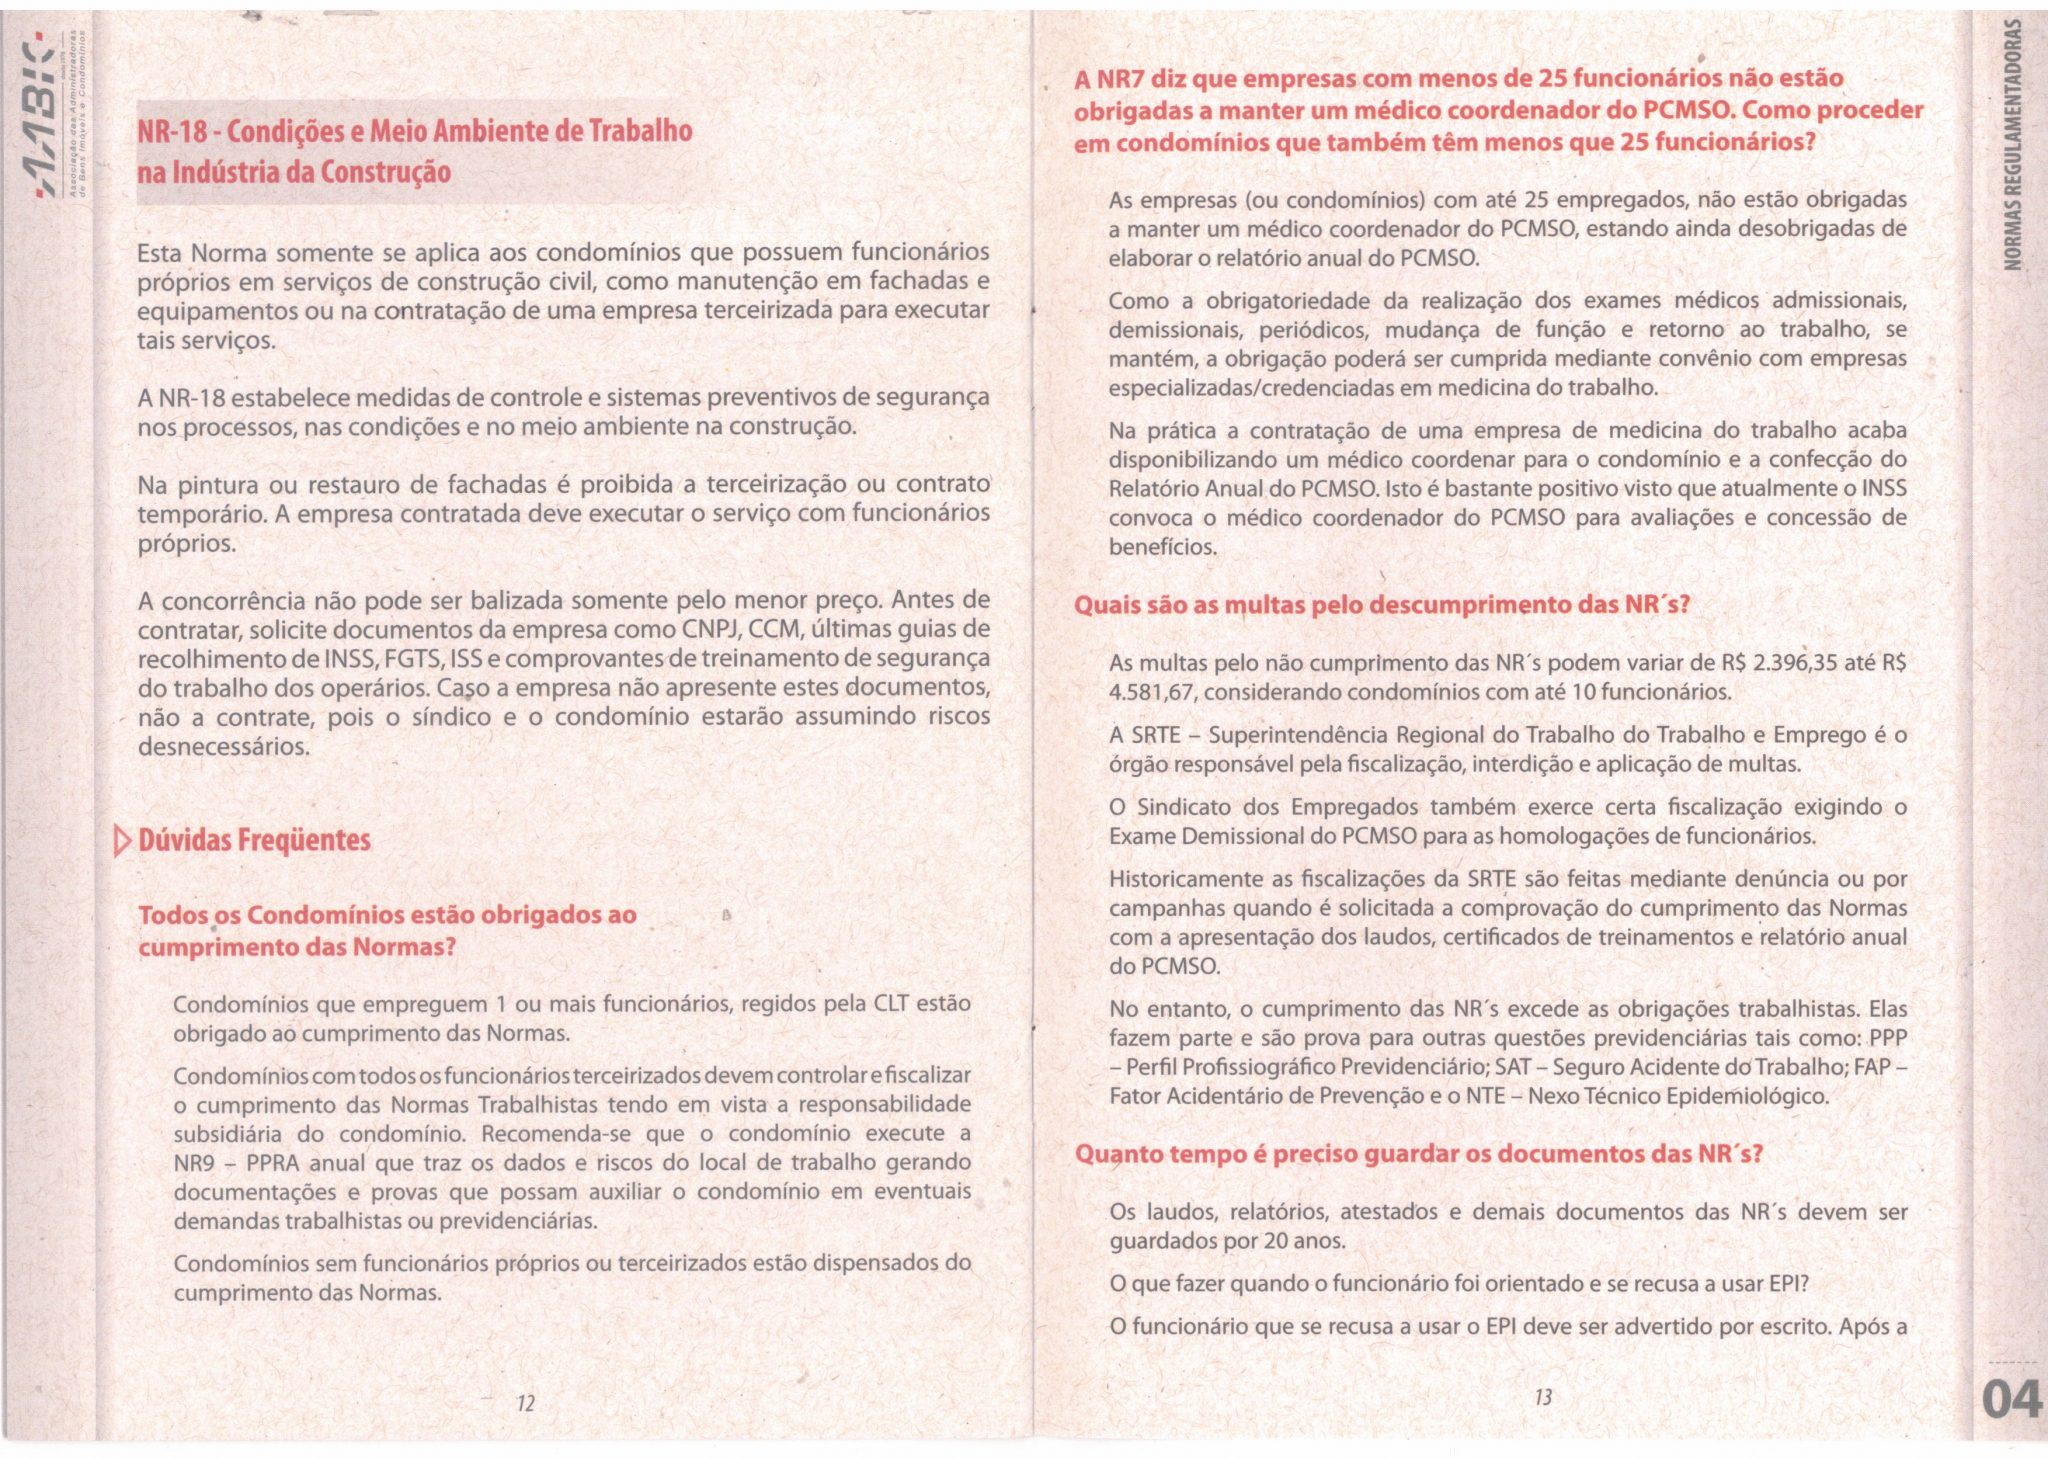 Scan_20190311_162851_006